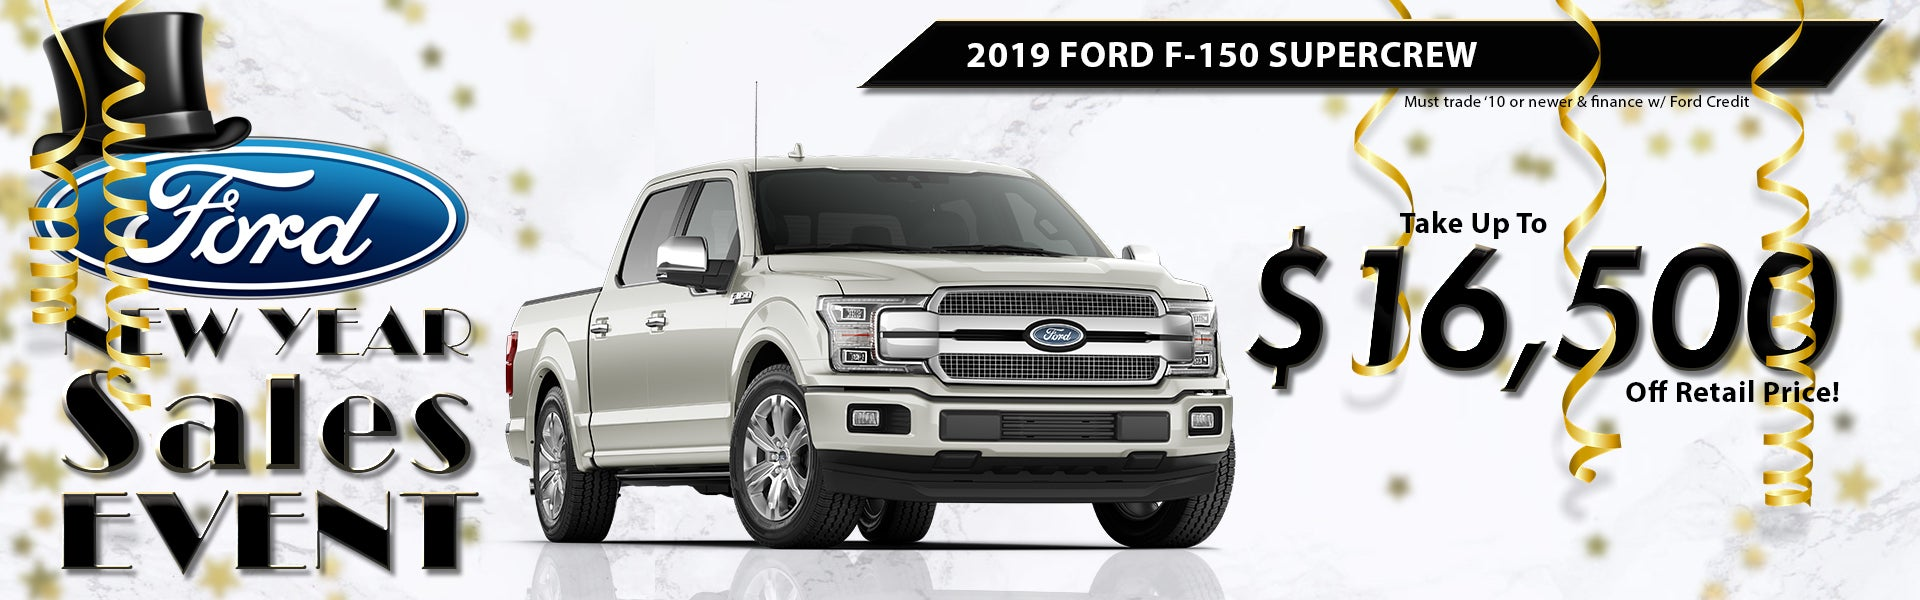 My Ford Credit >> Ford Dealer In Indian Trail Nc Used Cars Indian Trail